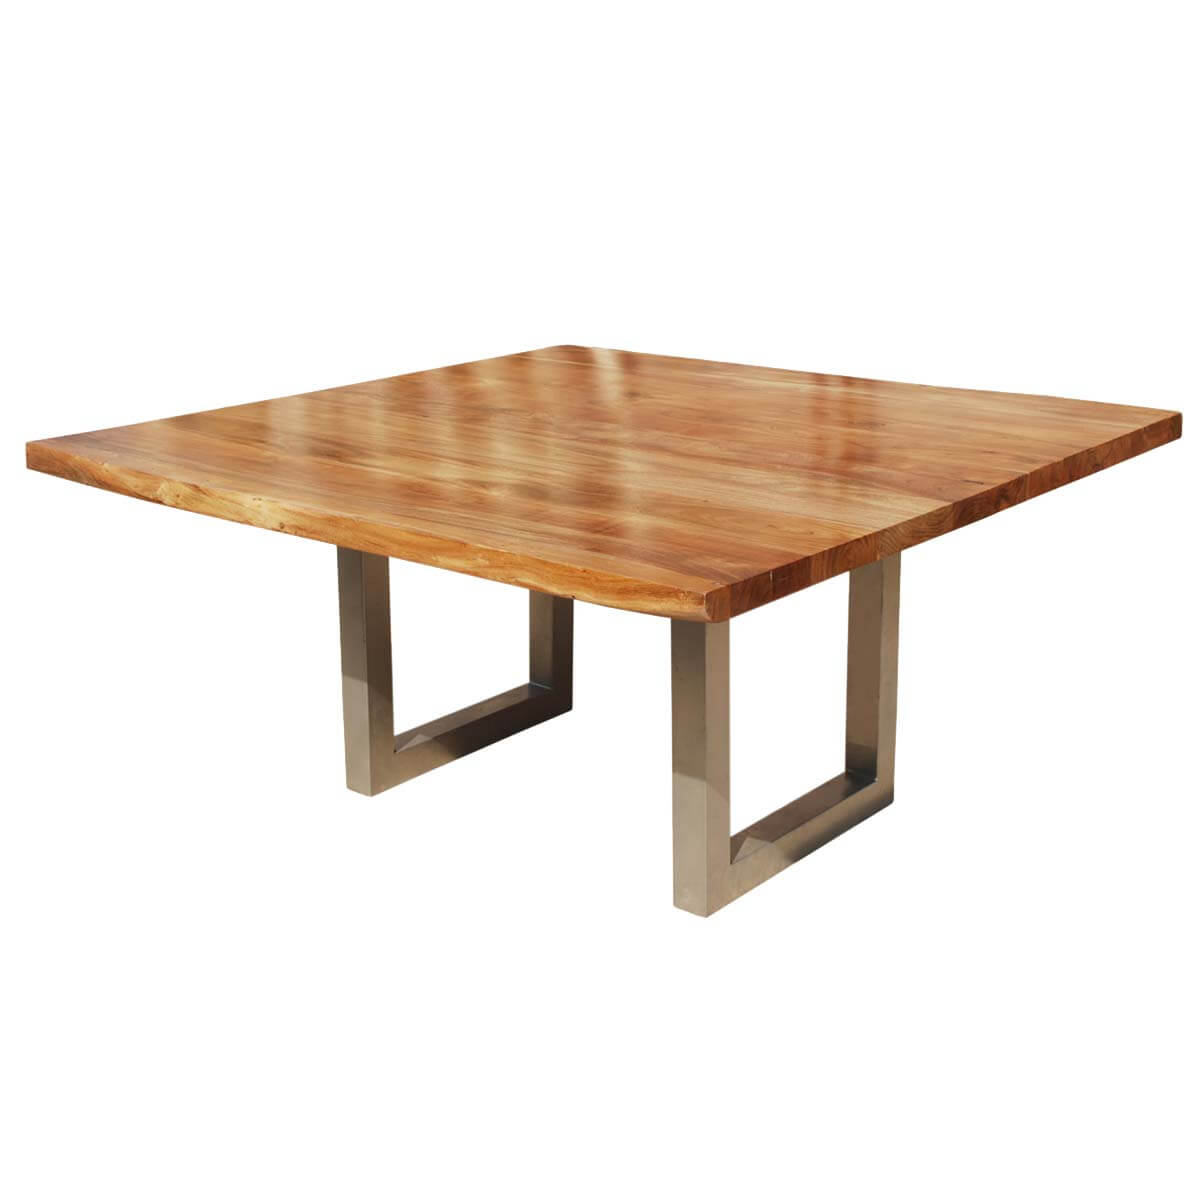 Wooden square dining table - Moab Square Acacia Wood Live Edge Rustic Dining Table